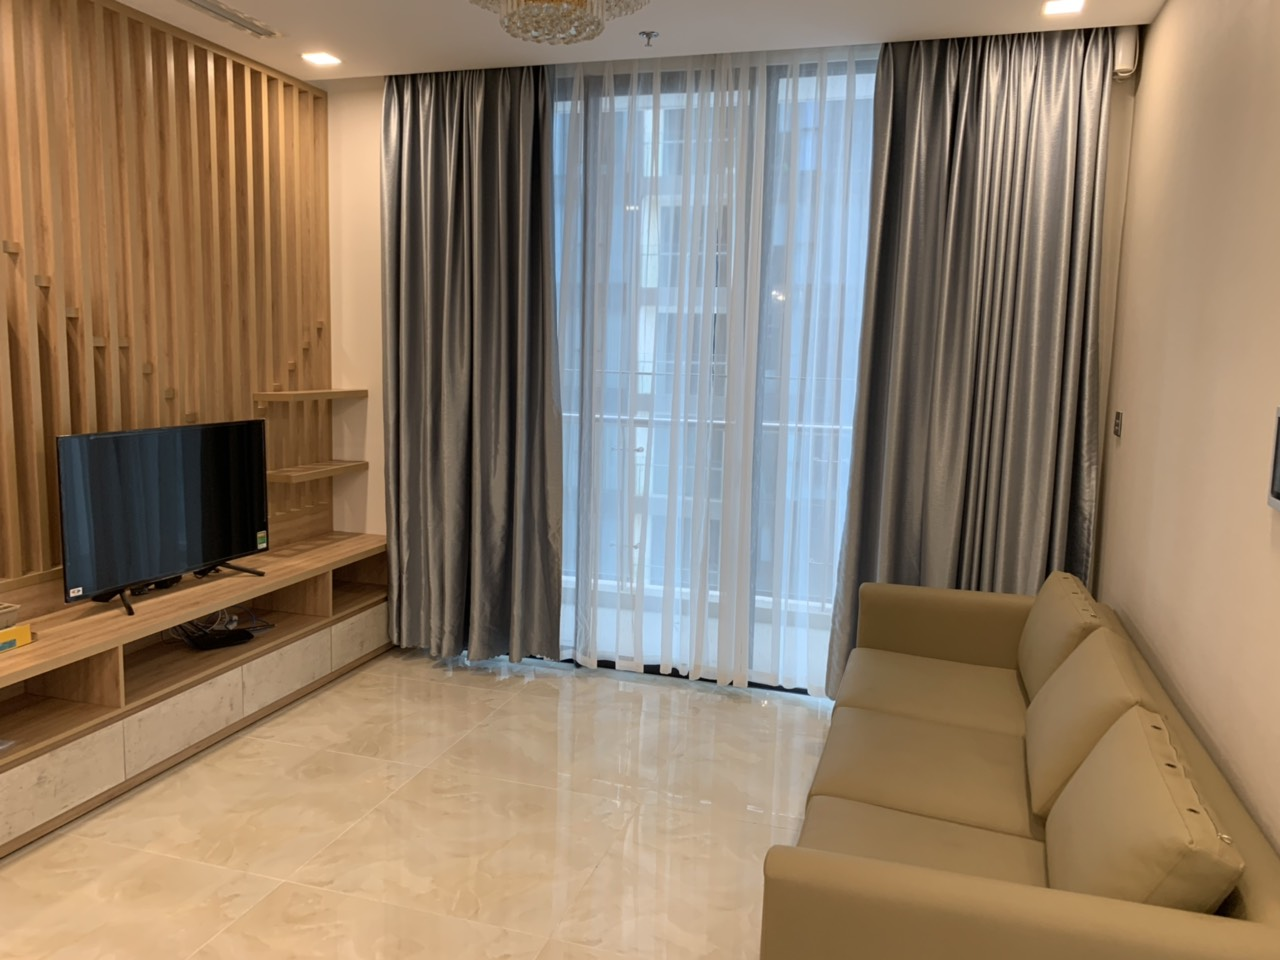 Apartment for rent D102196 (13)